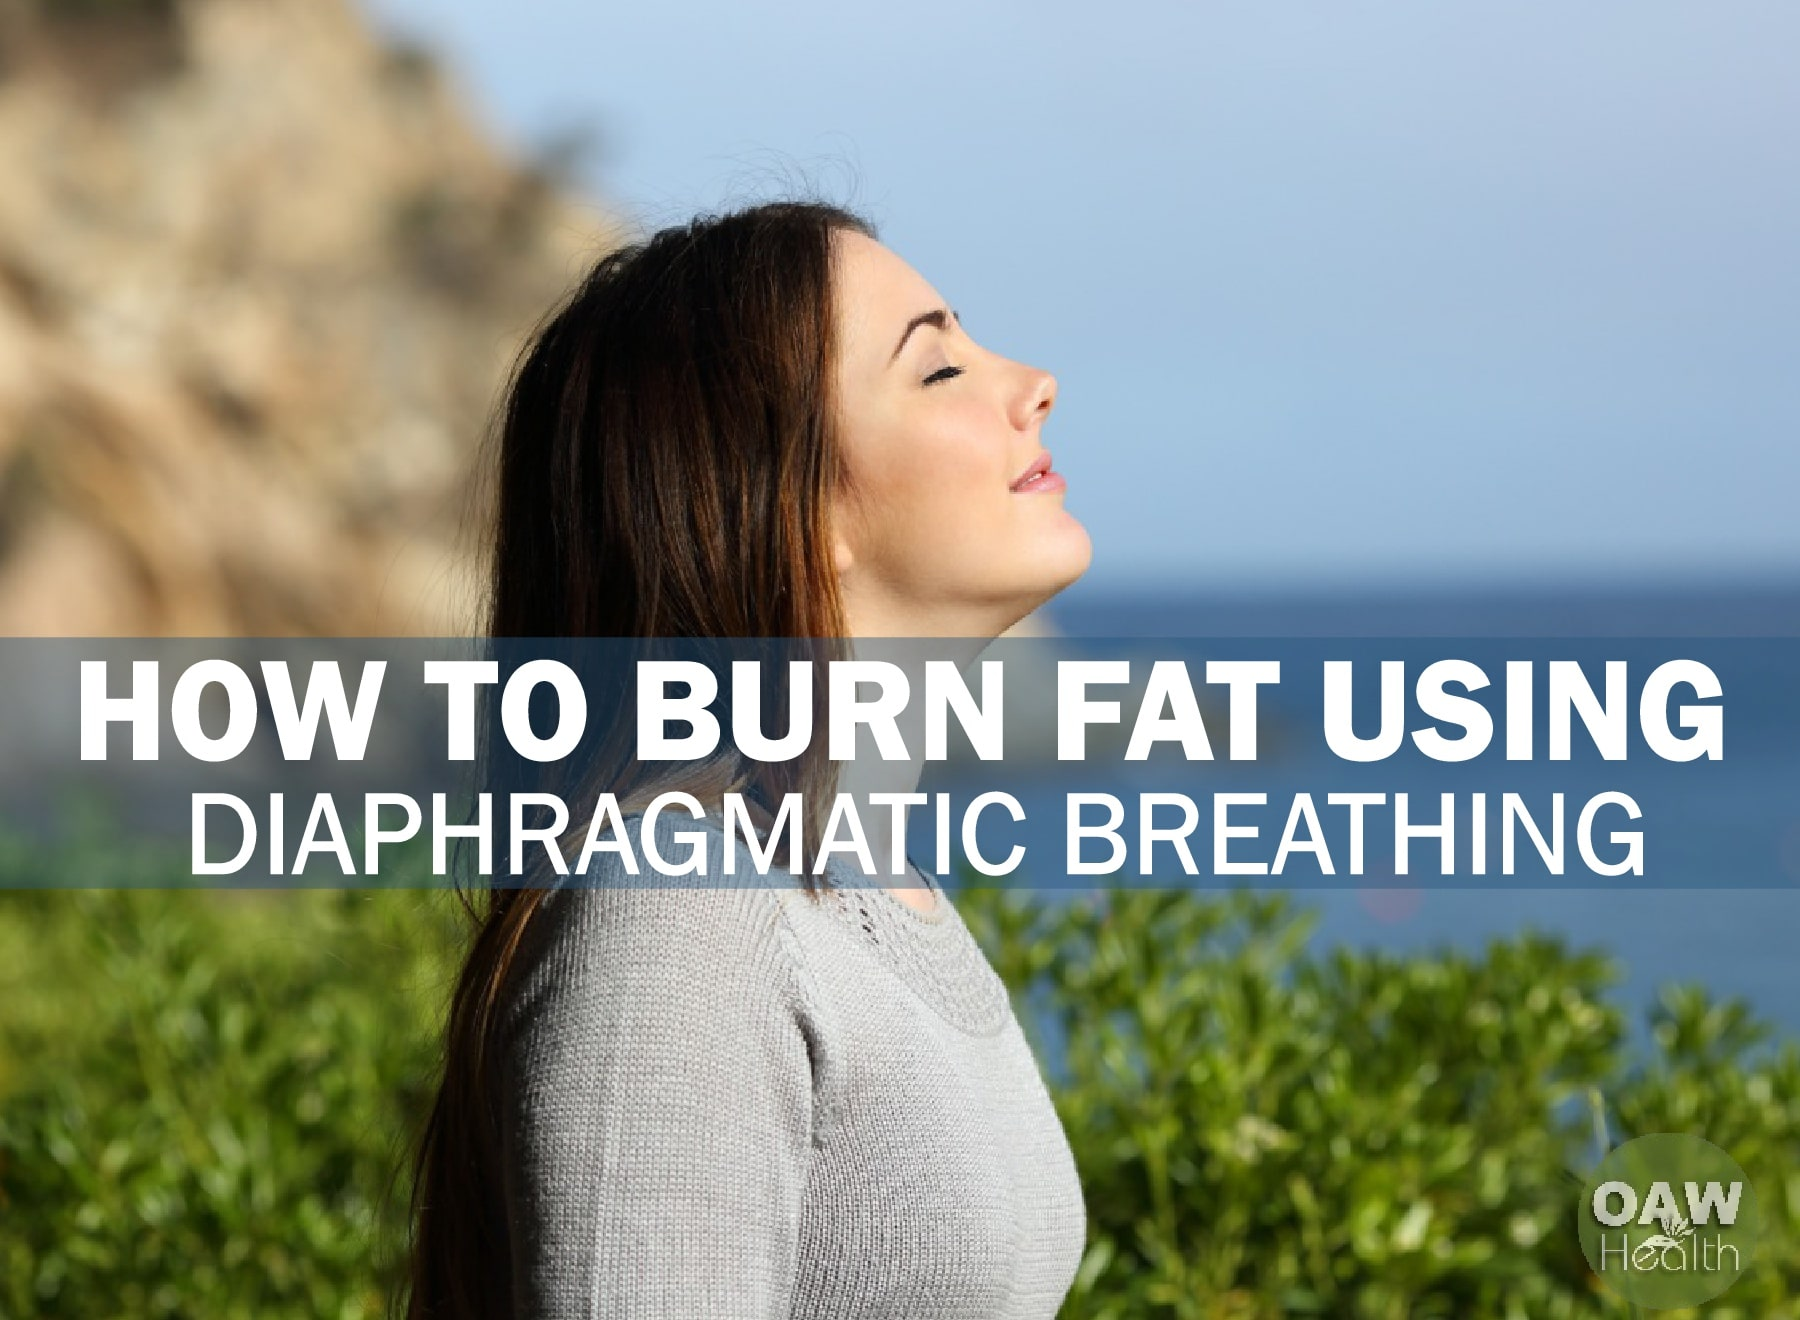 How To Burn Fat Using Diaphragmatic Breathing